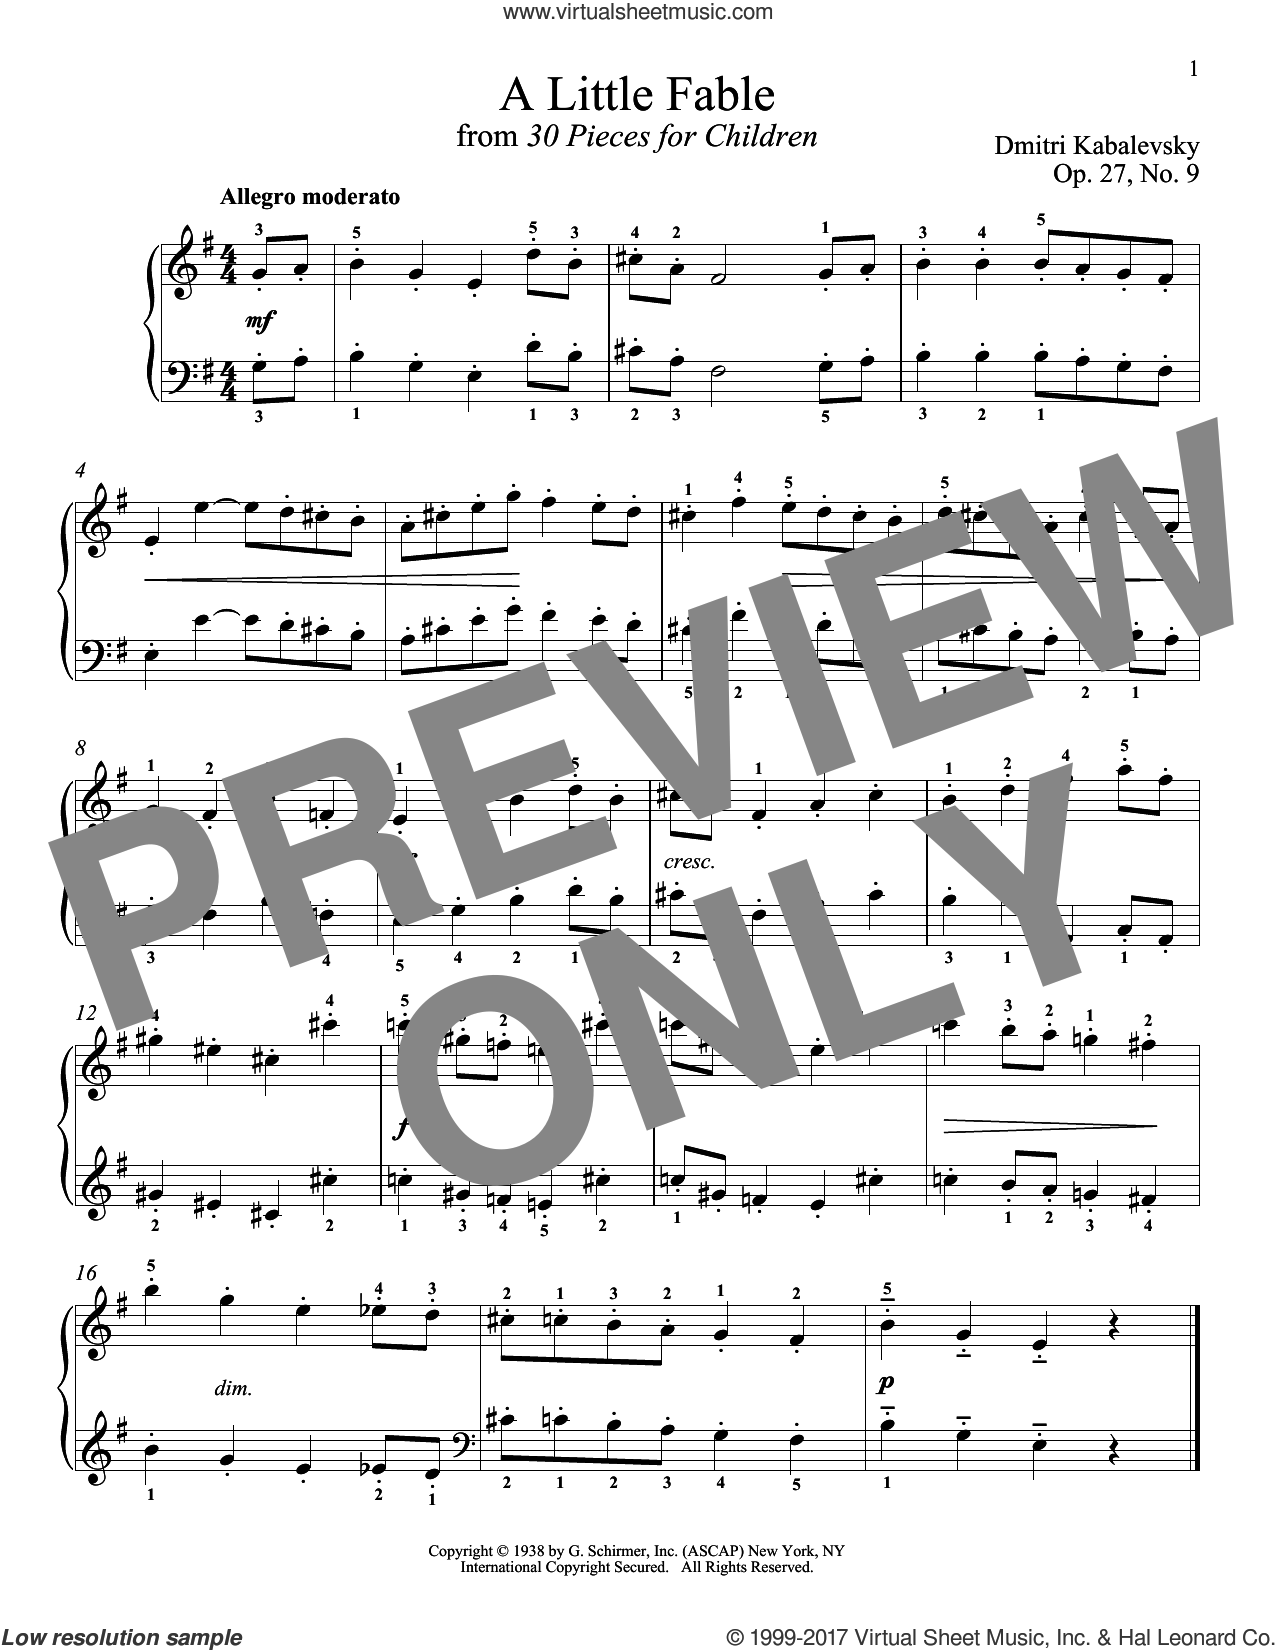 A Little Fable sheet music for piano solo by Dmitri Kabalevsky, Jeffrey Biegel, Margaret Otwell and Richard Walters, classical score, intermediate skill level